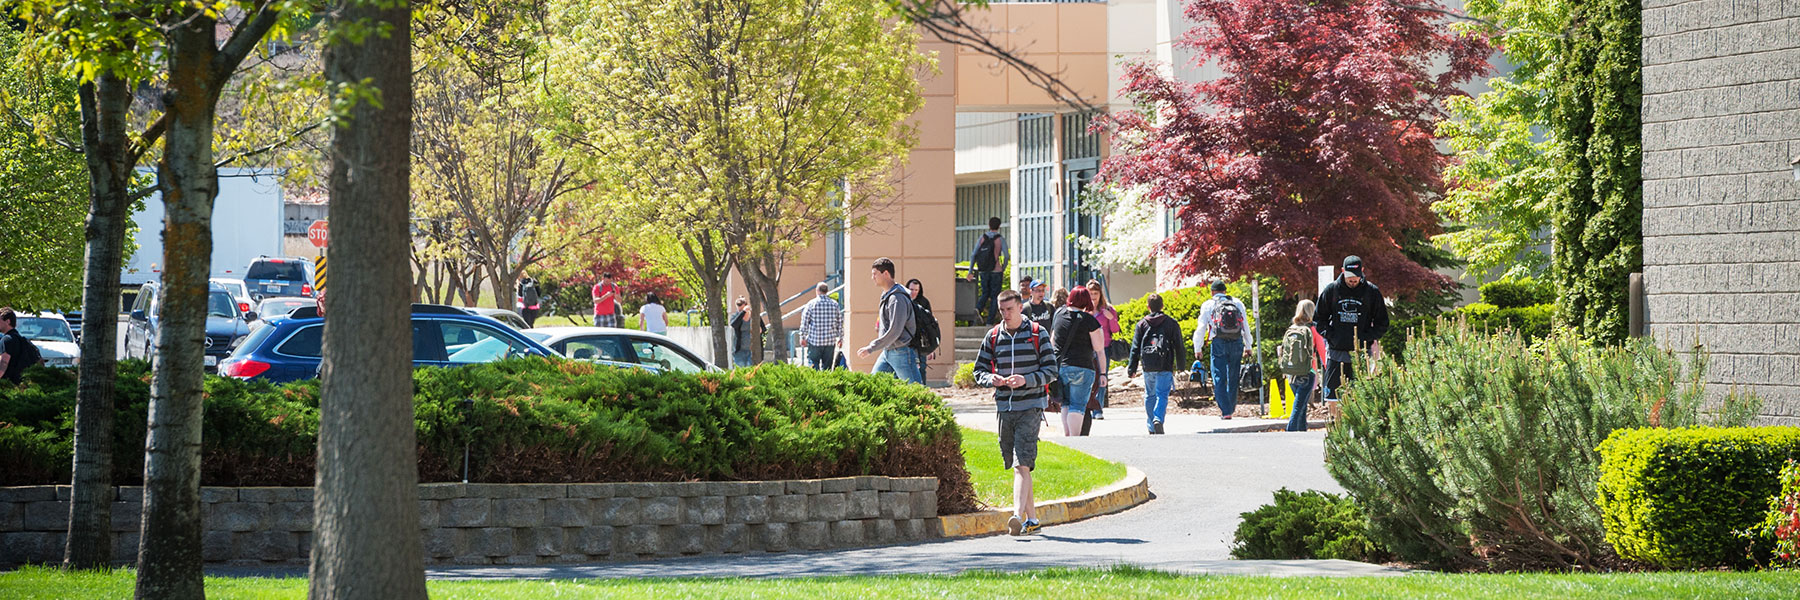 Sunny afternoon on campus with students walking around